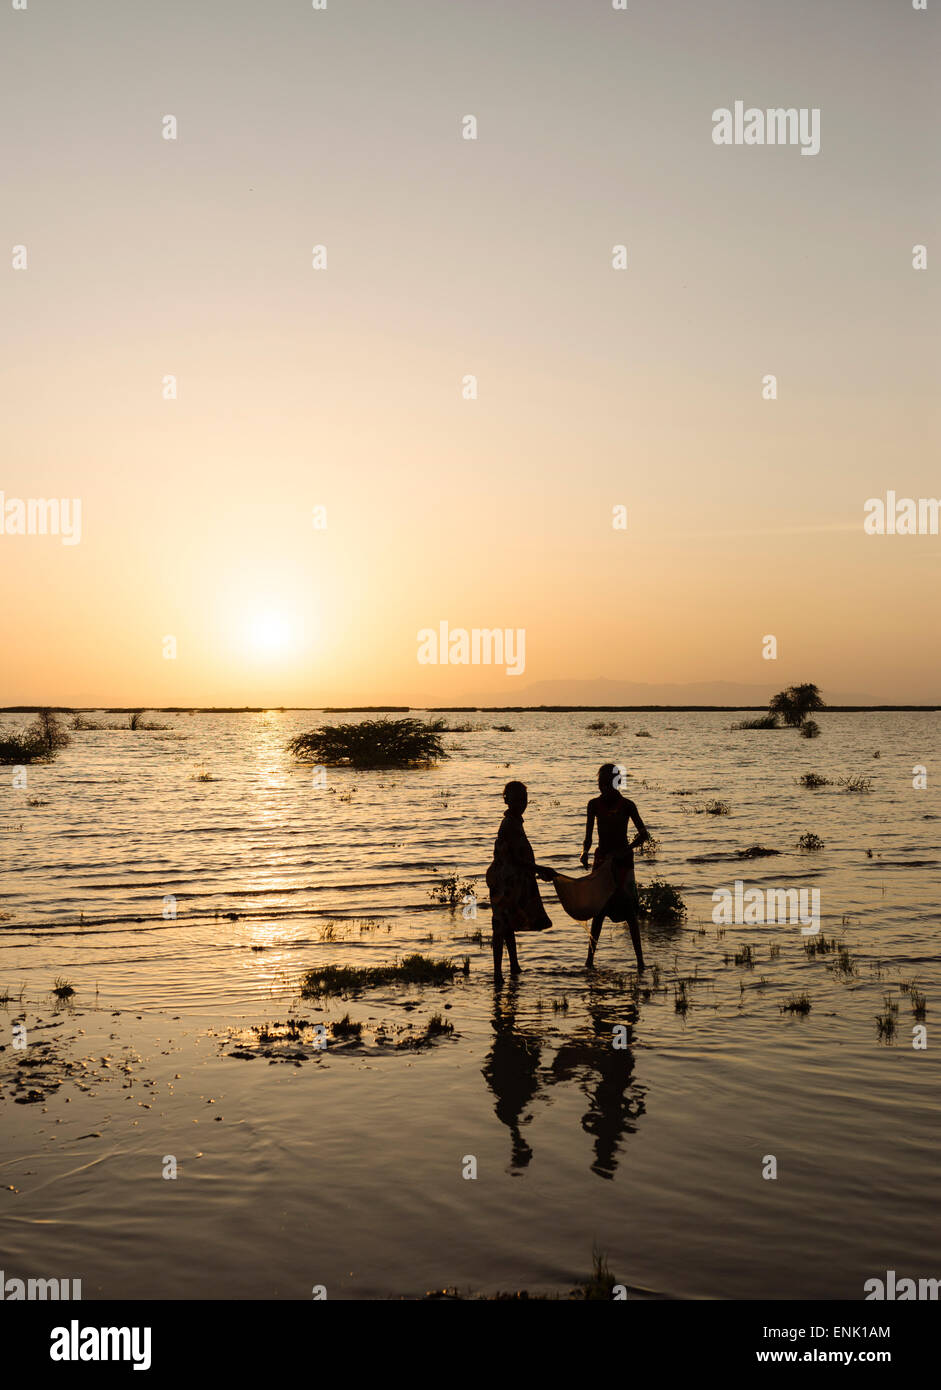 Children of the Dassanech tribe fishing on the shore of Turkana Lake, Omo Valley, Ethiopia, Africa - Stock Image